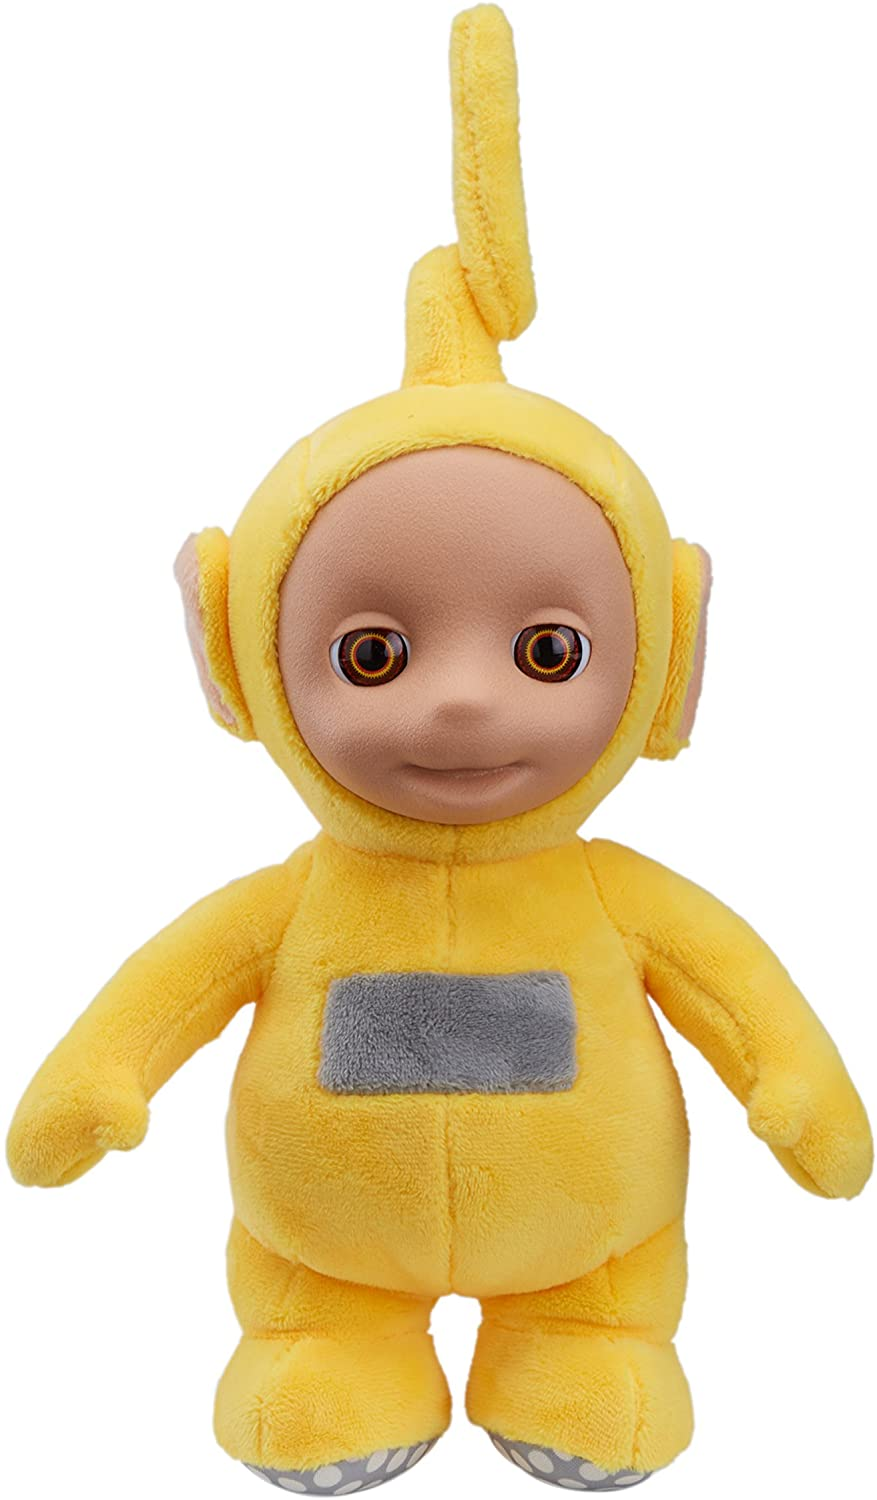 Teletubbies T375916 Cbeebies Plush, Yellow: Character Options:  Amazon.co.uk: Toys & Games